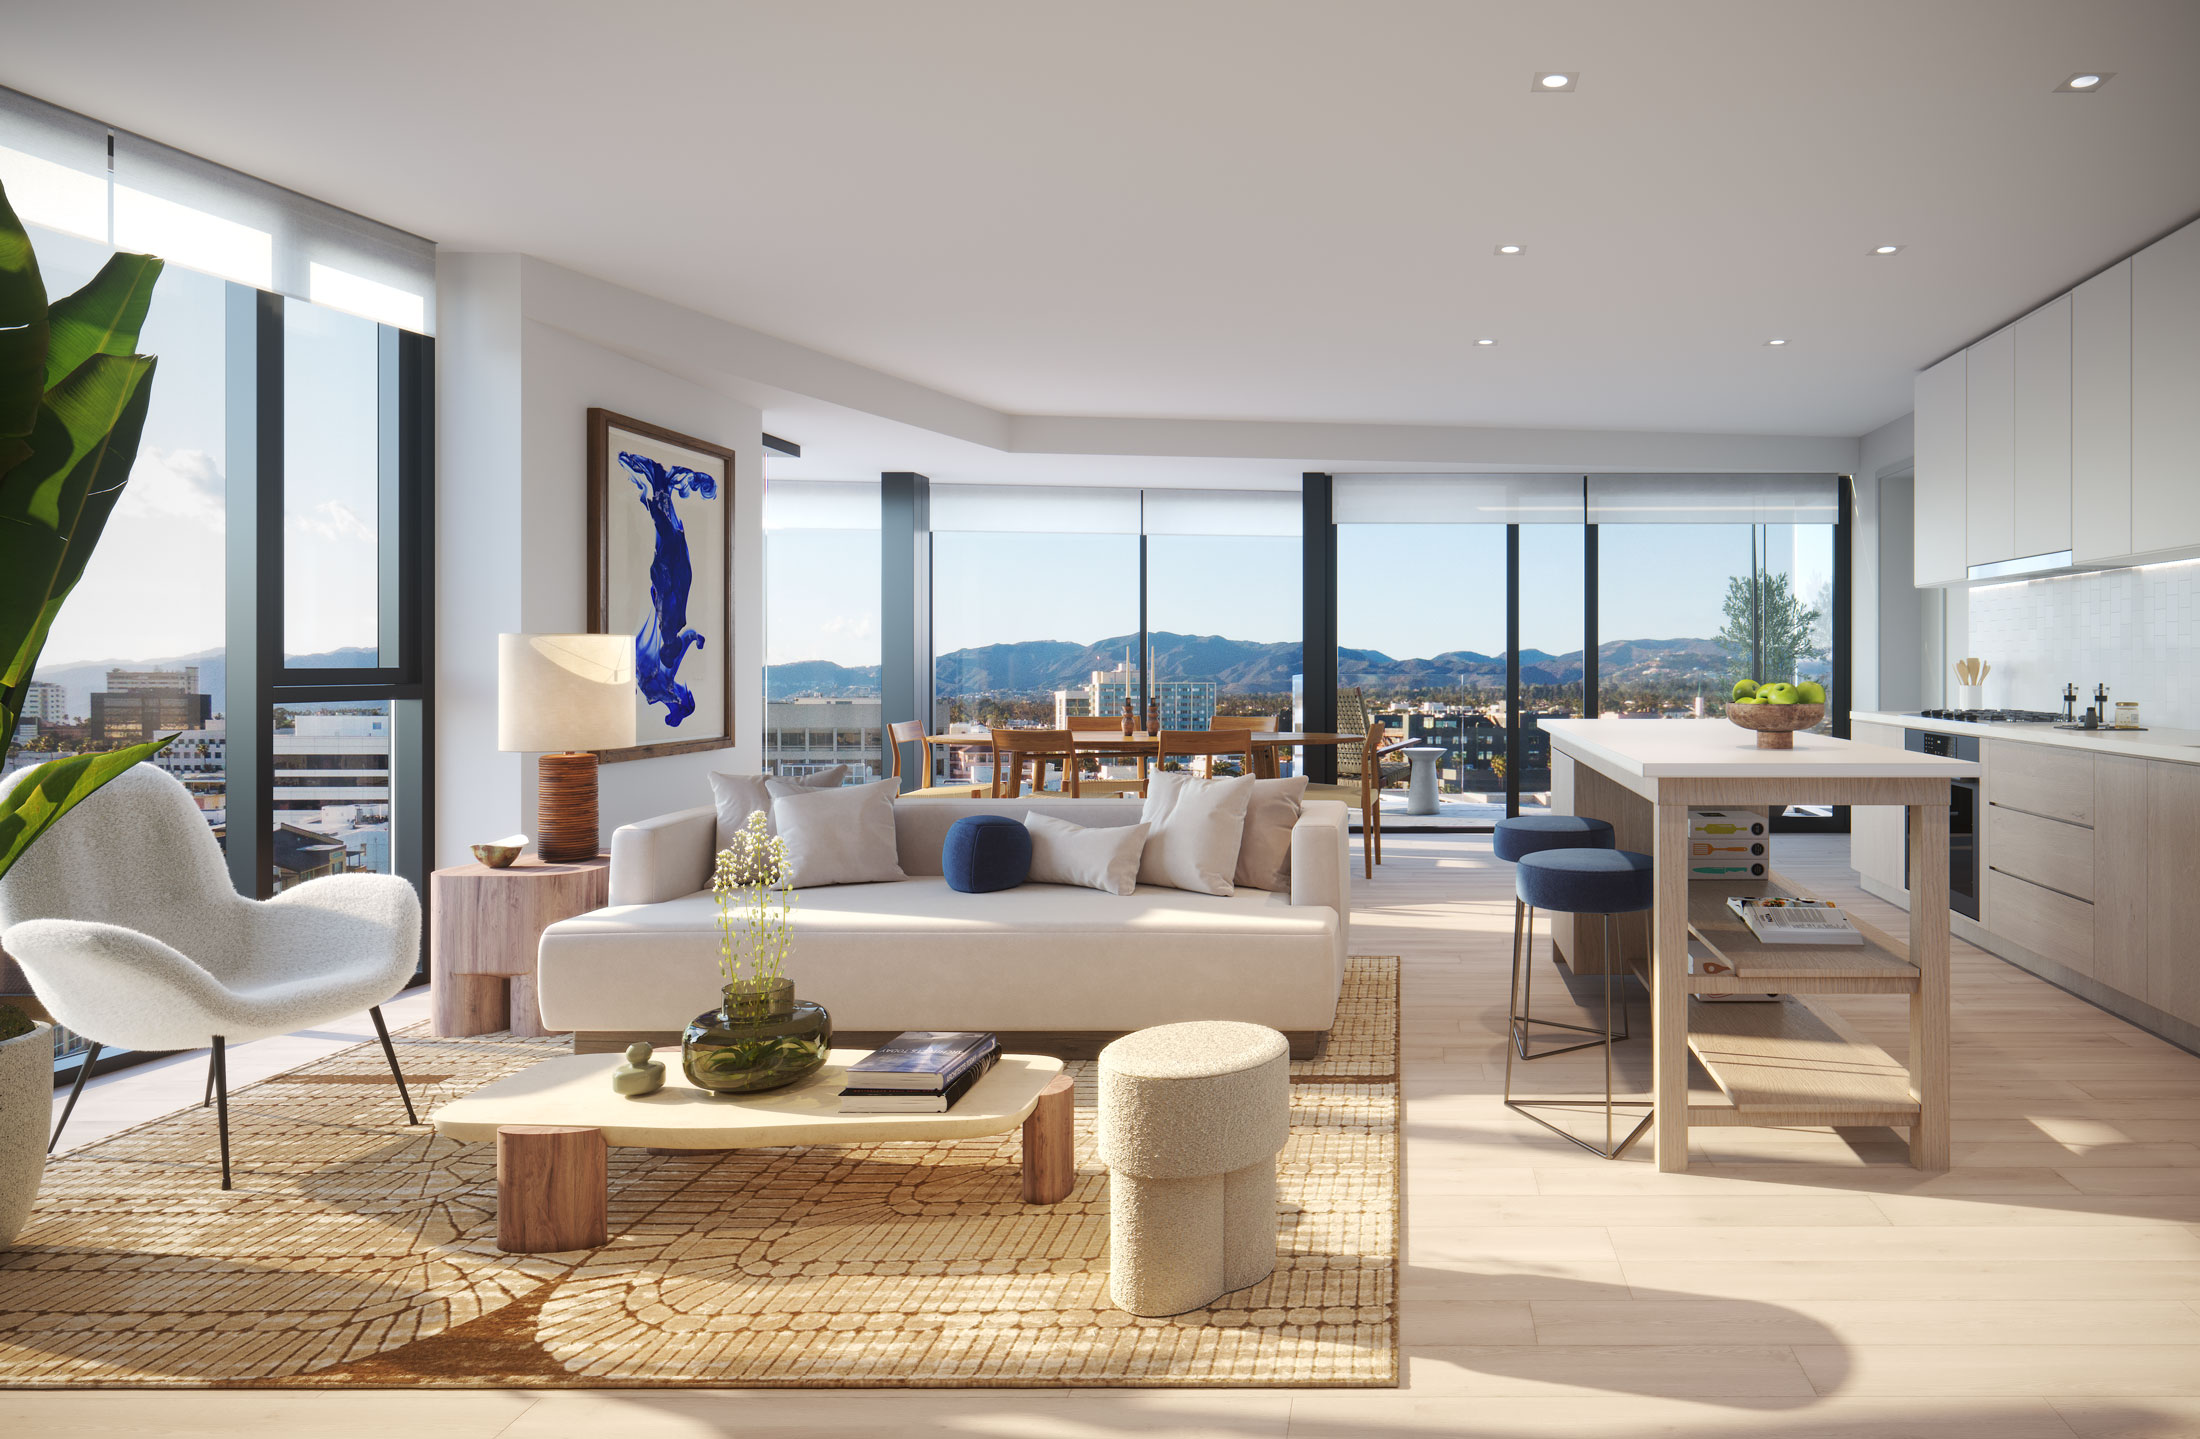 Architectural Rendering of the interior of a unit in The Park building project located in Santa Monica, California